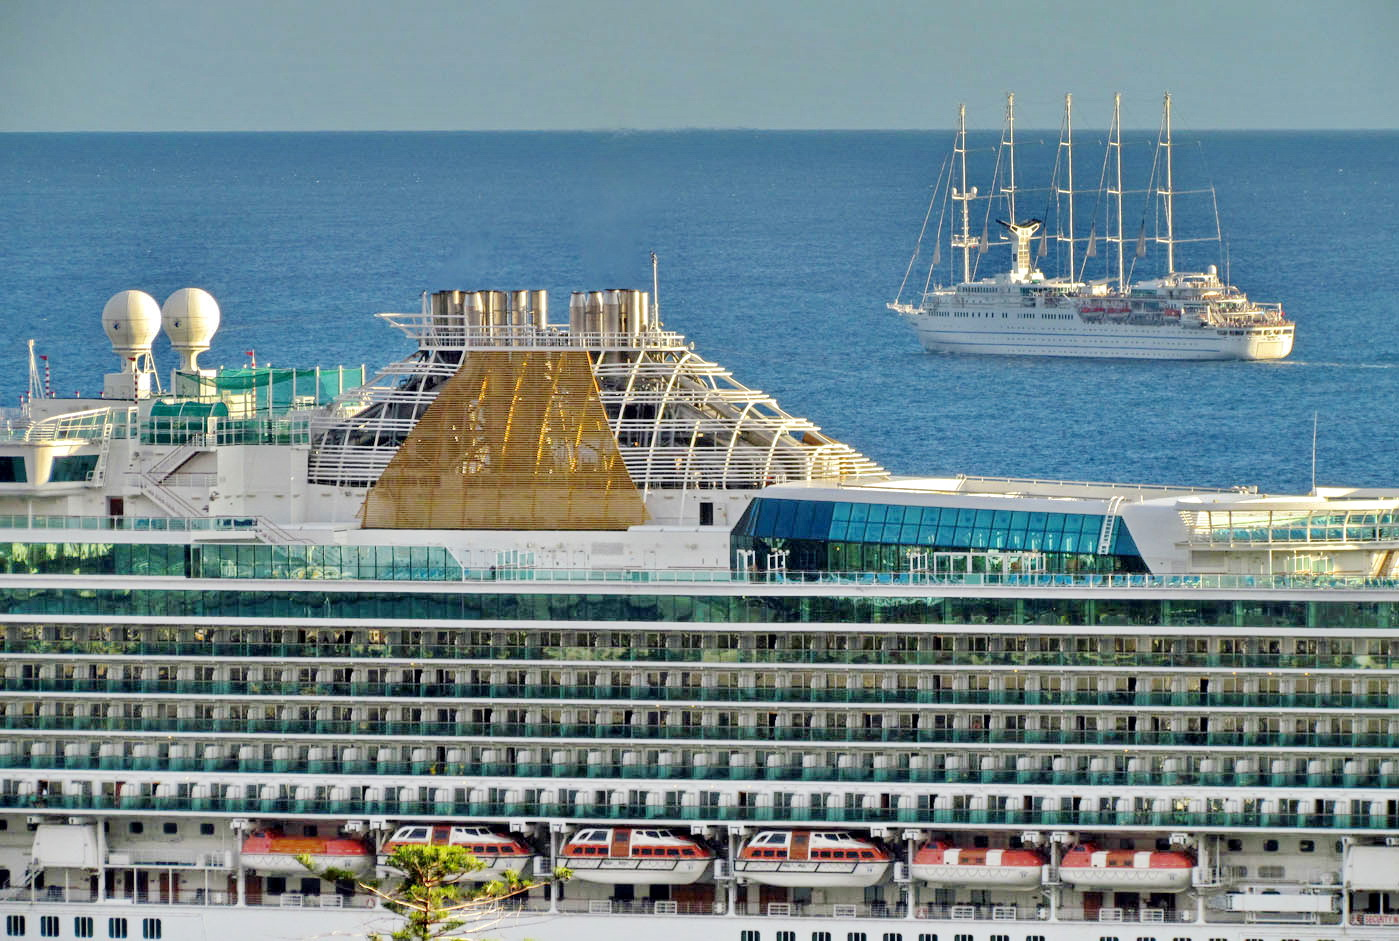 different but both cruise ships